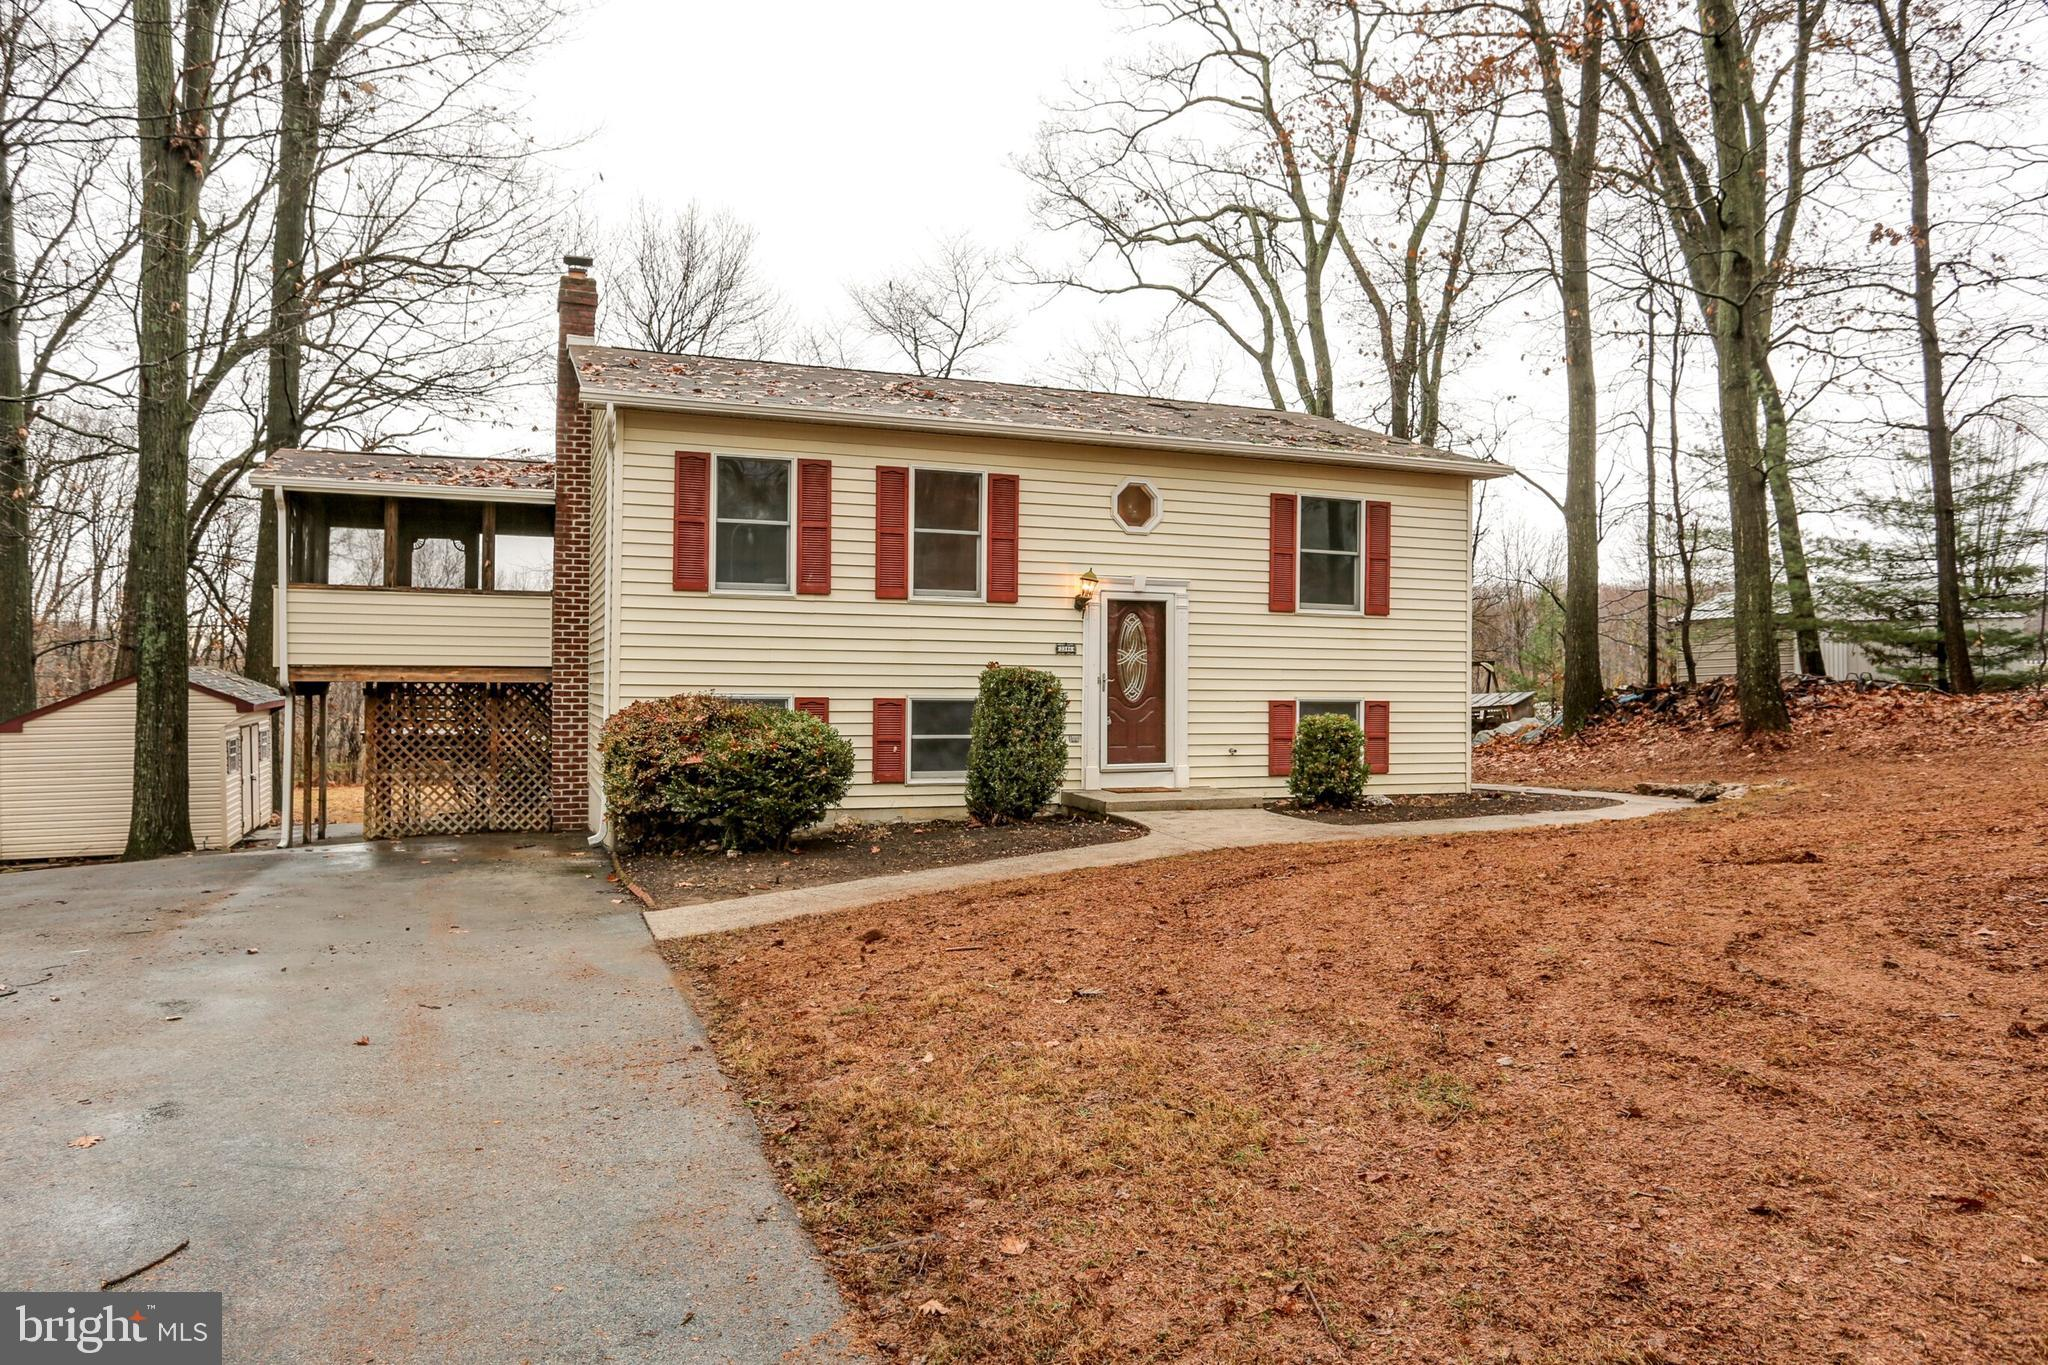 2346 SUNSET CIRCLE, GLENVILLE, PA 17329